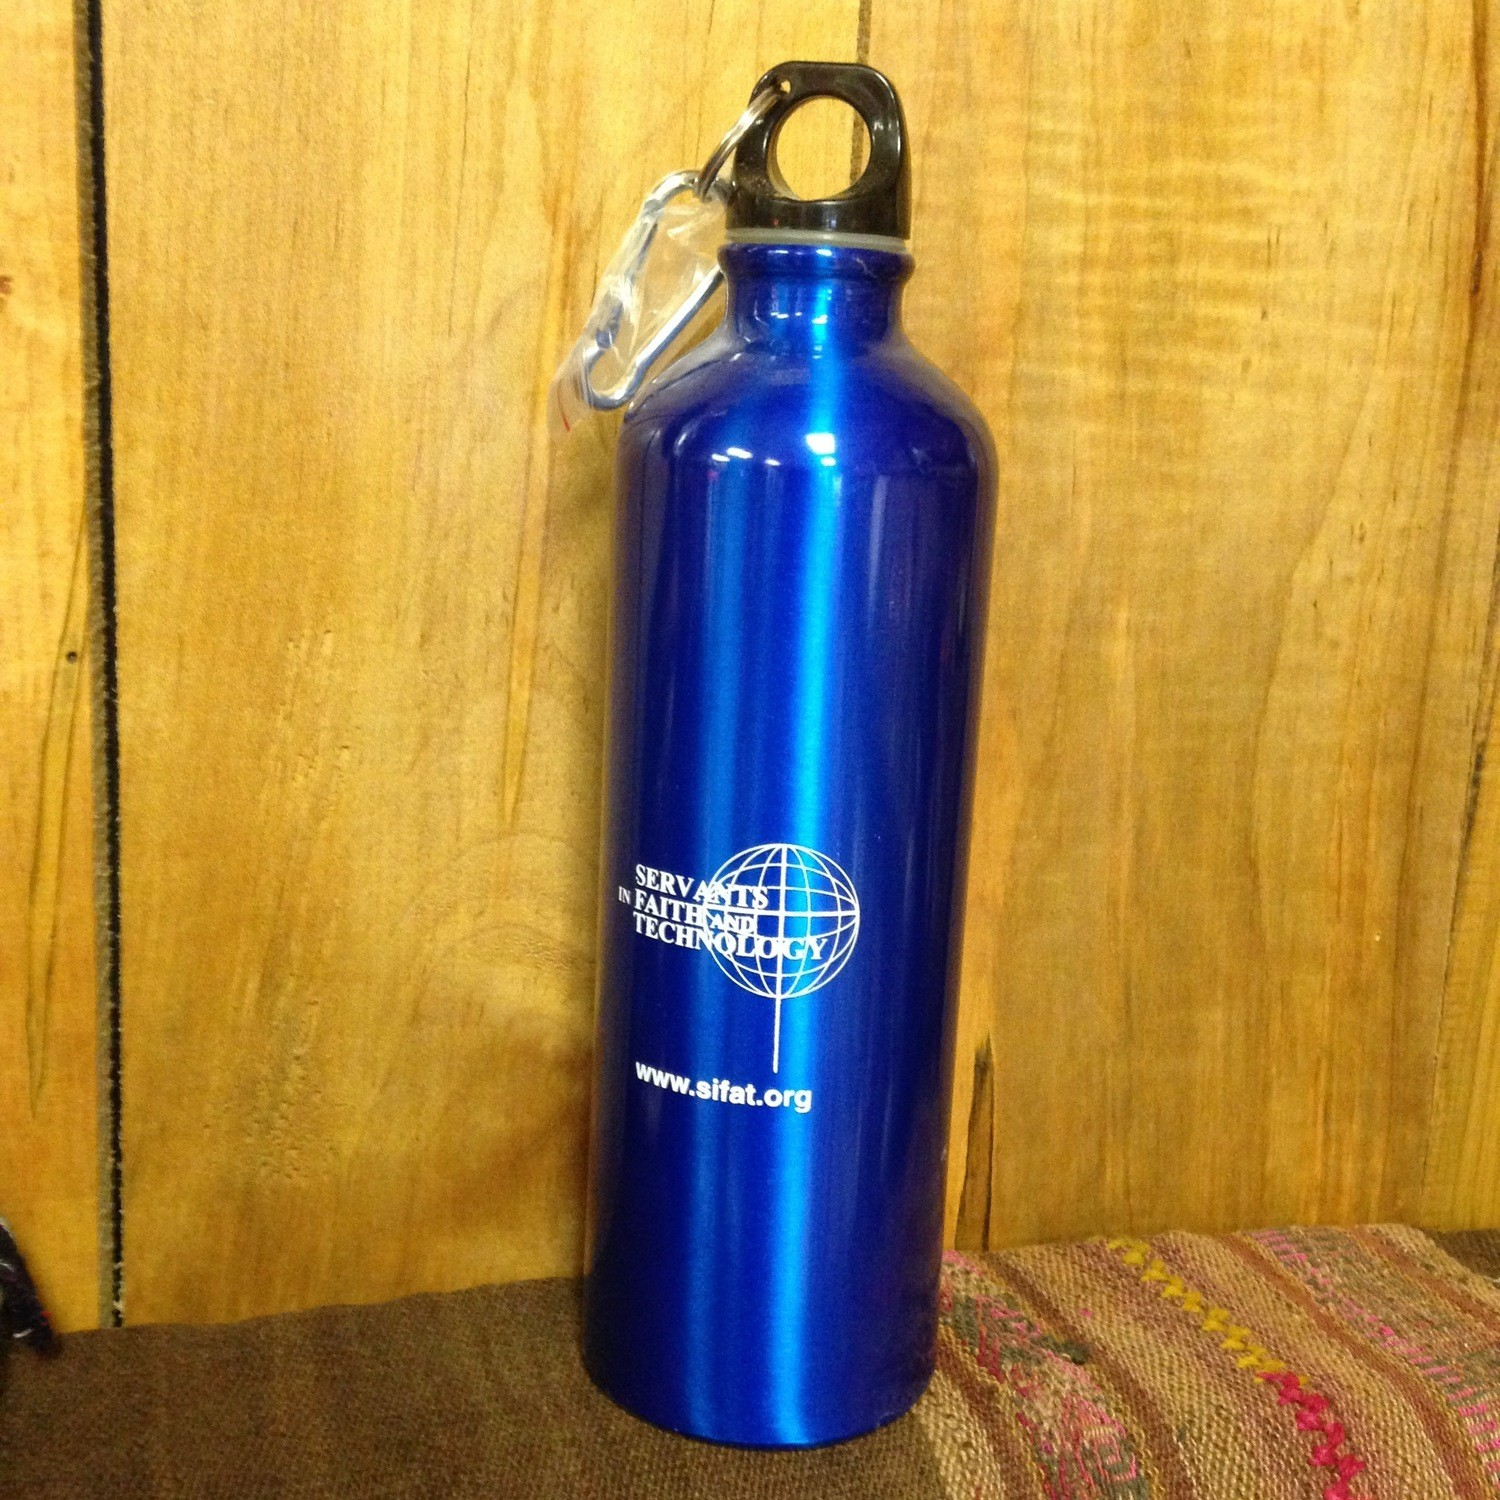 SIFAT Water Bottle